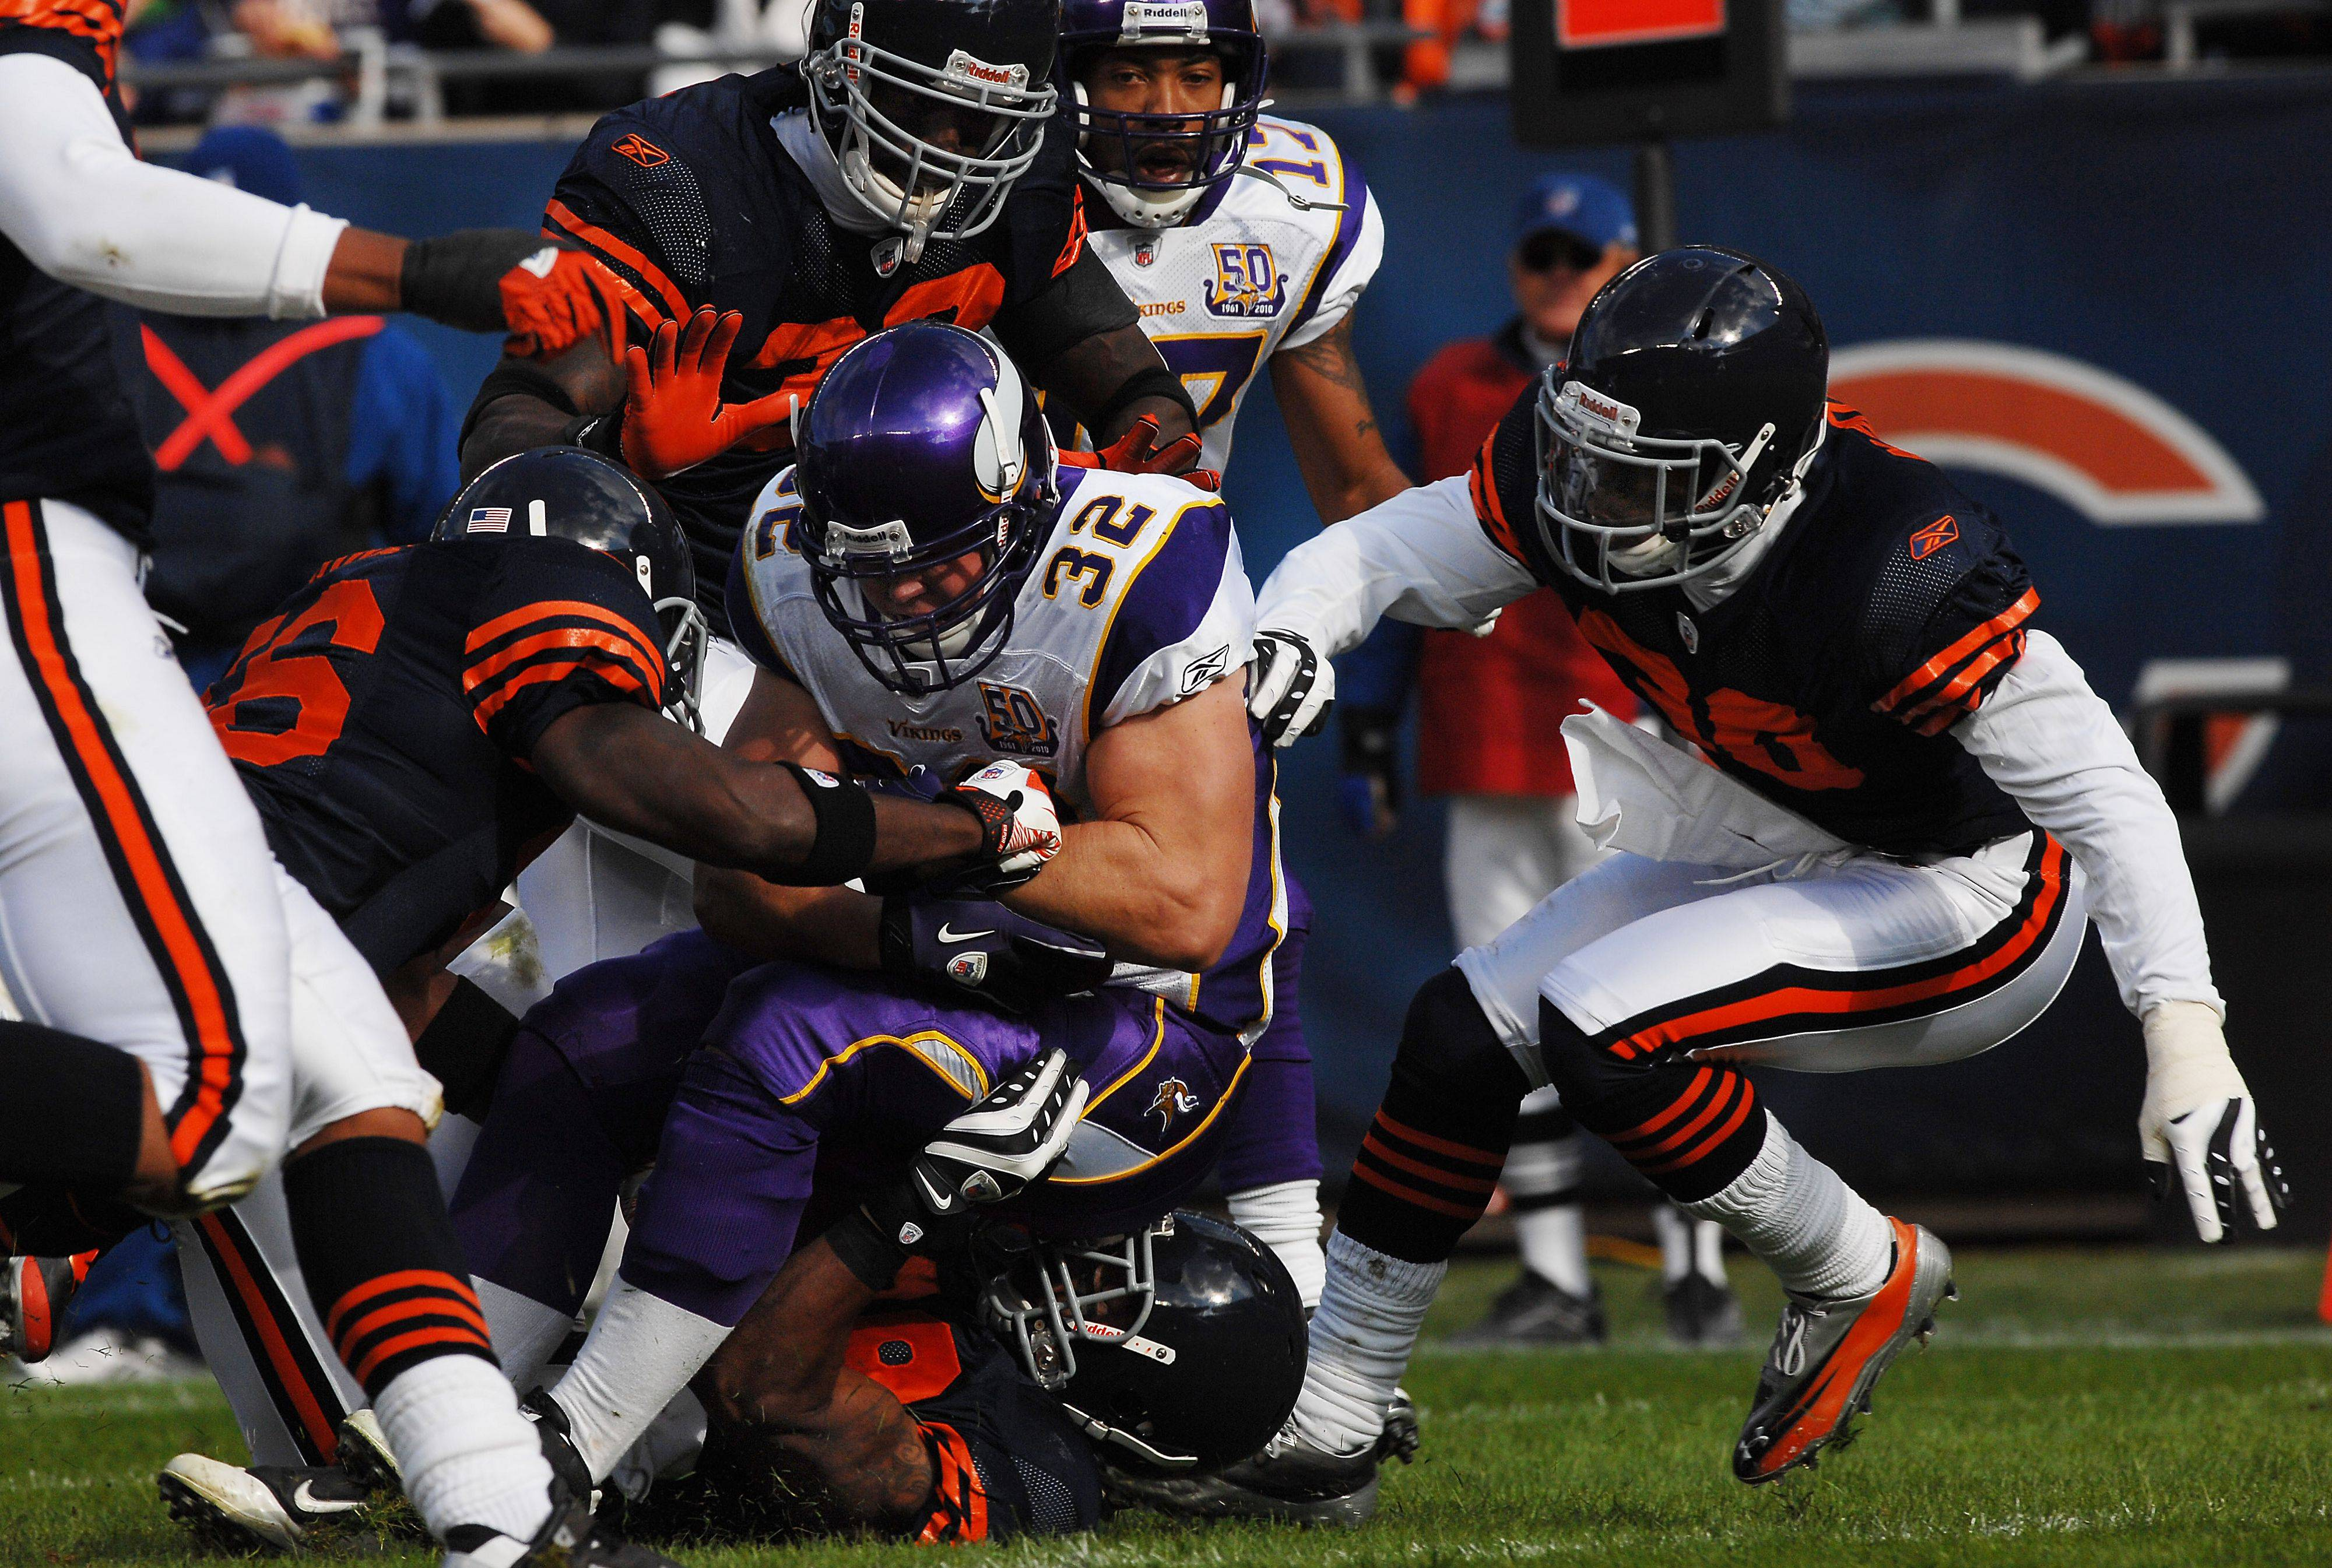 Chicago Bears defense wraps up Minnesota's Toby Gerhart for short yardage in the second quarter.